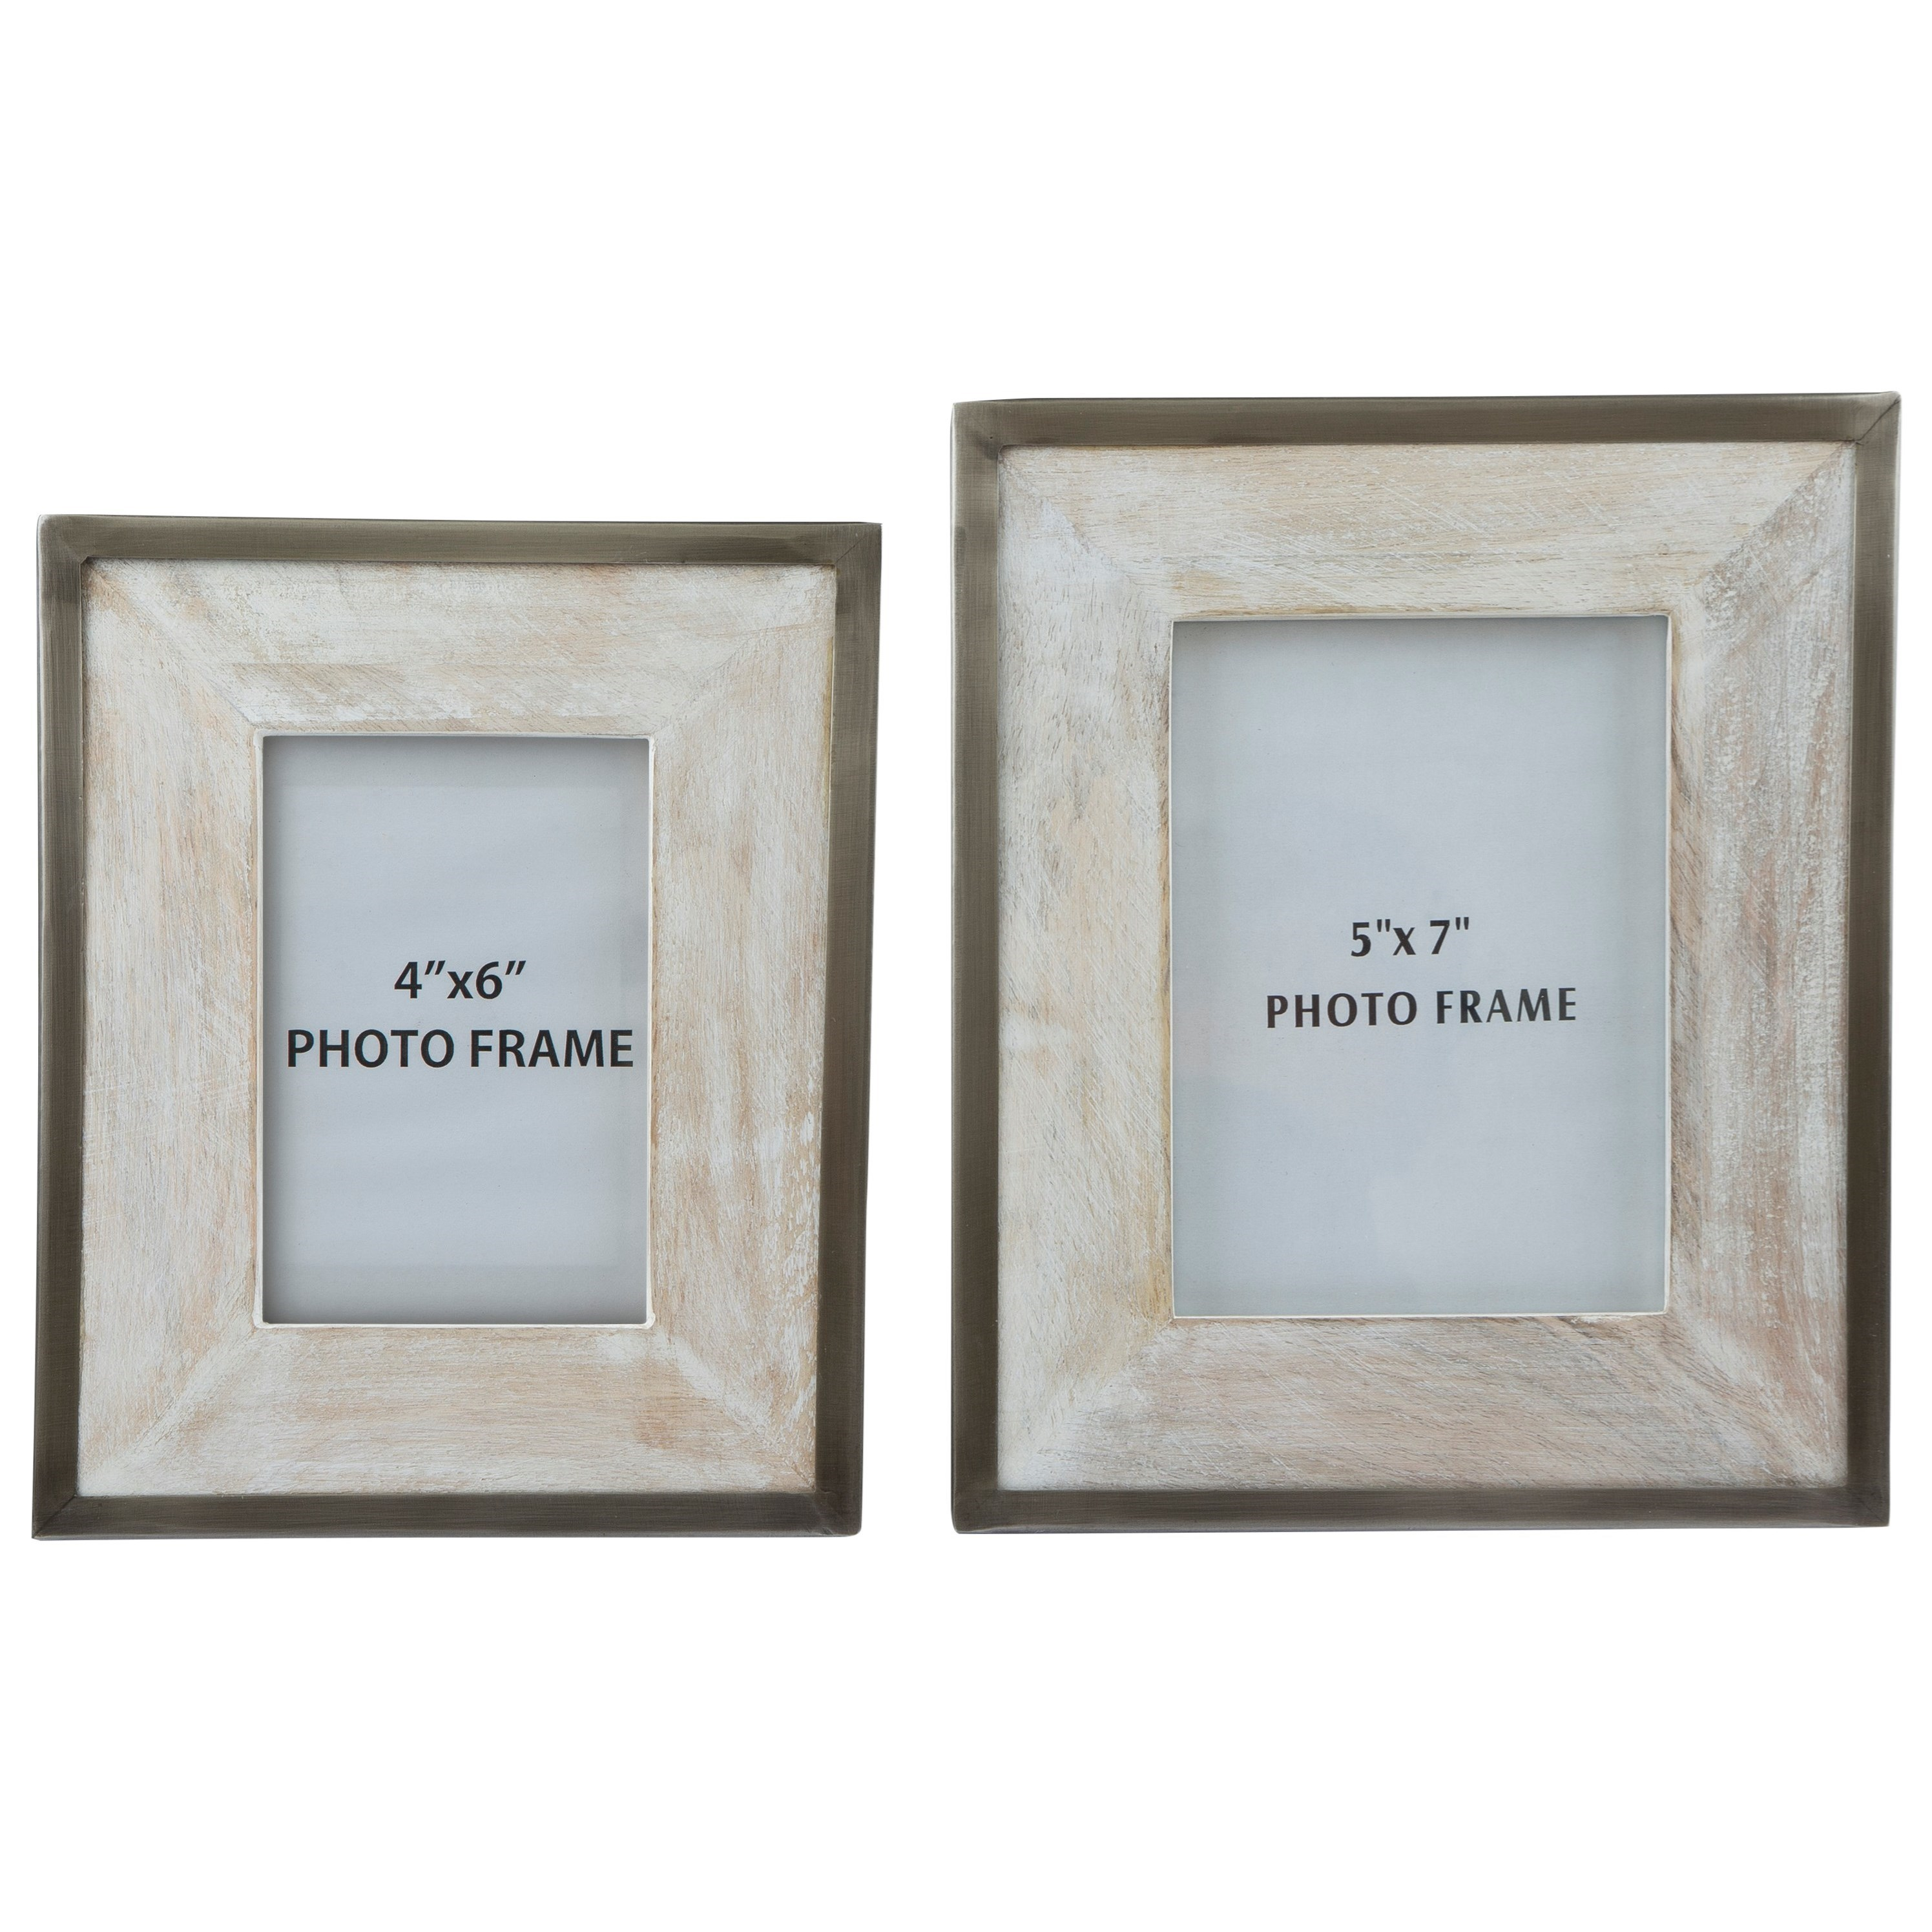 Signature Design by Ashley Accents Kadija Photo Frame (Set of 2) - Item Number: A2000178F